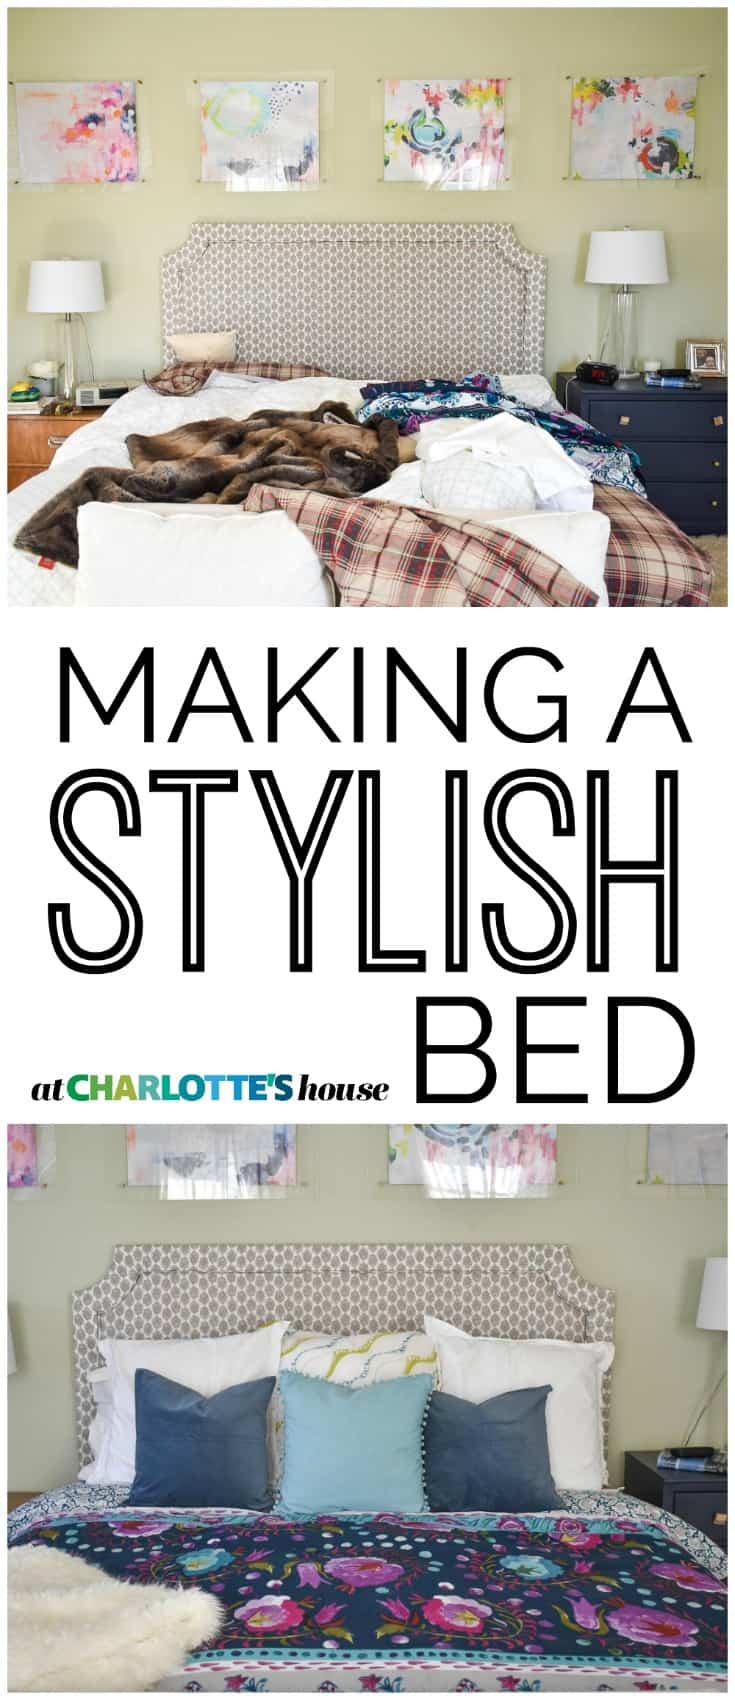 simple tips to make your bed look magazine worthy!